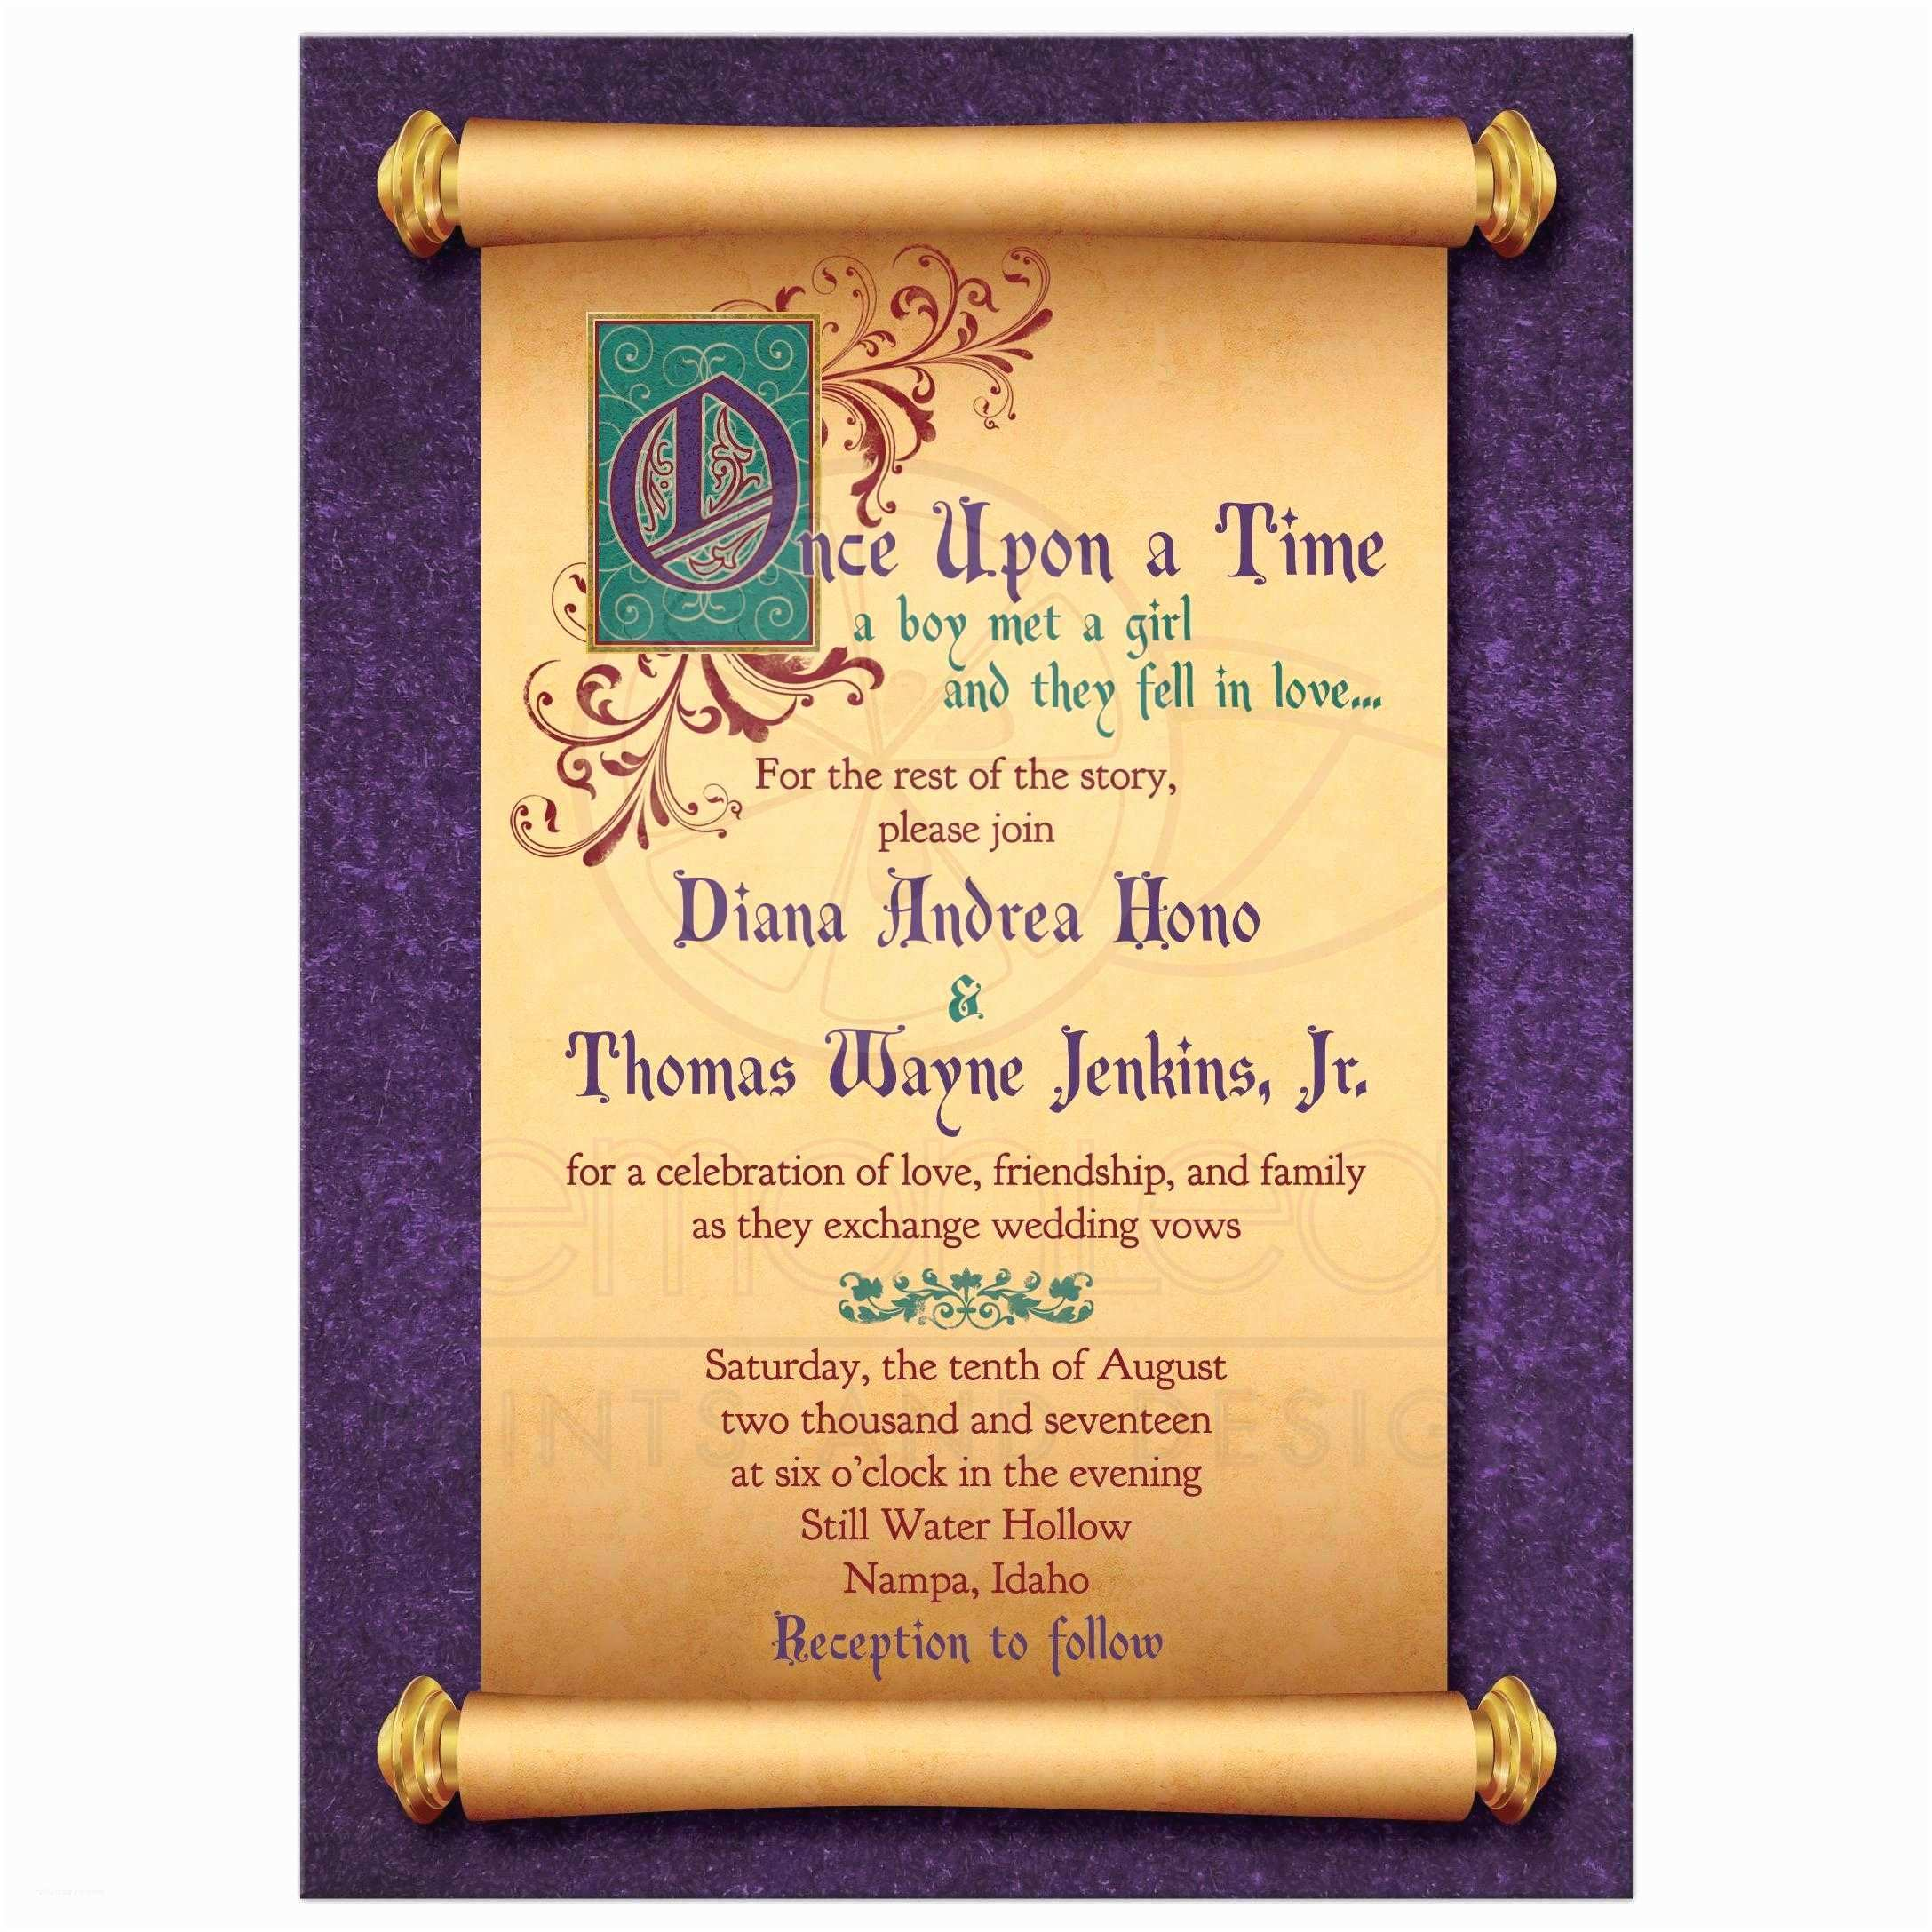 Once Upon A Time Wedding Invitations Fairytale Wedding Invitation Me Val Scroll Ce Upon A Time